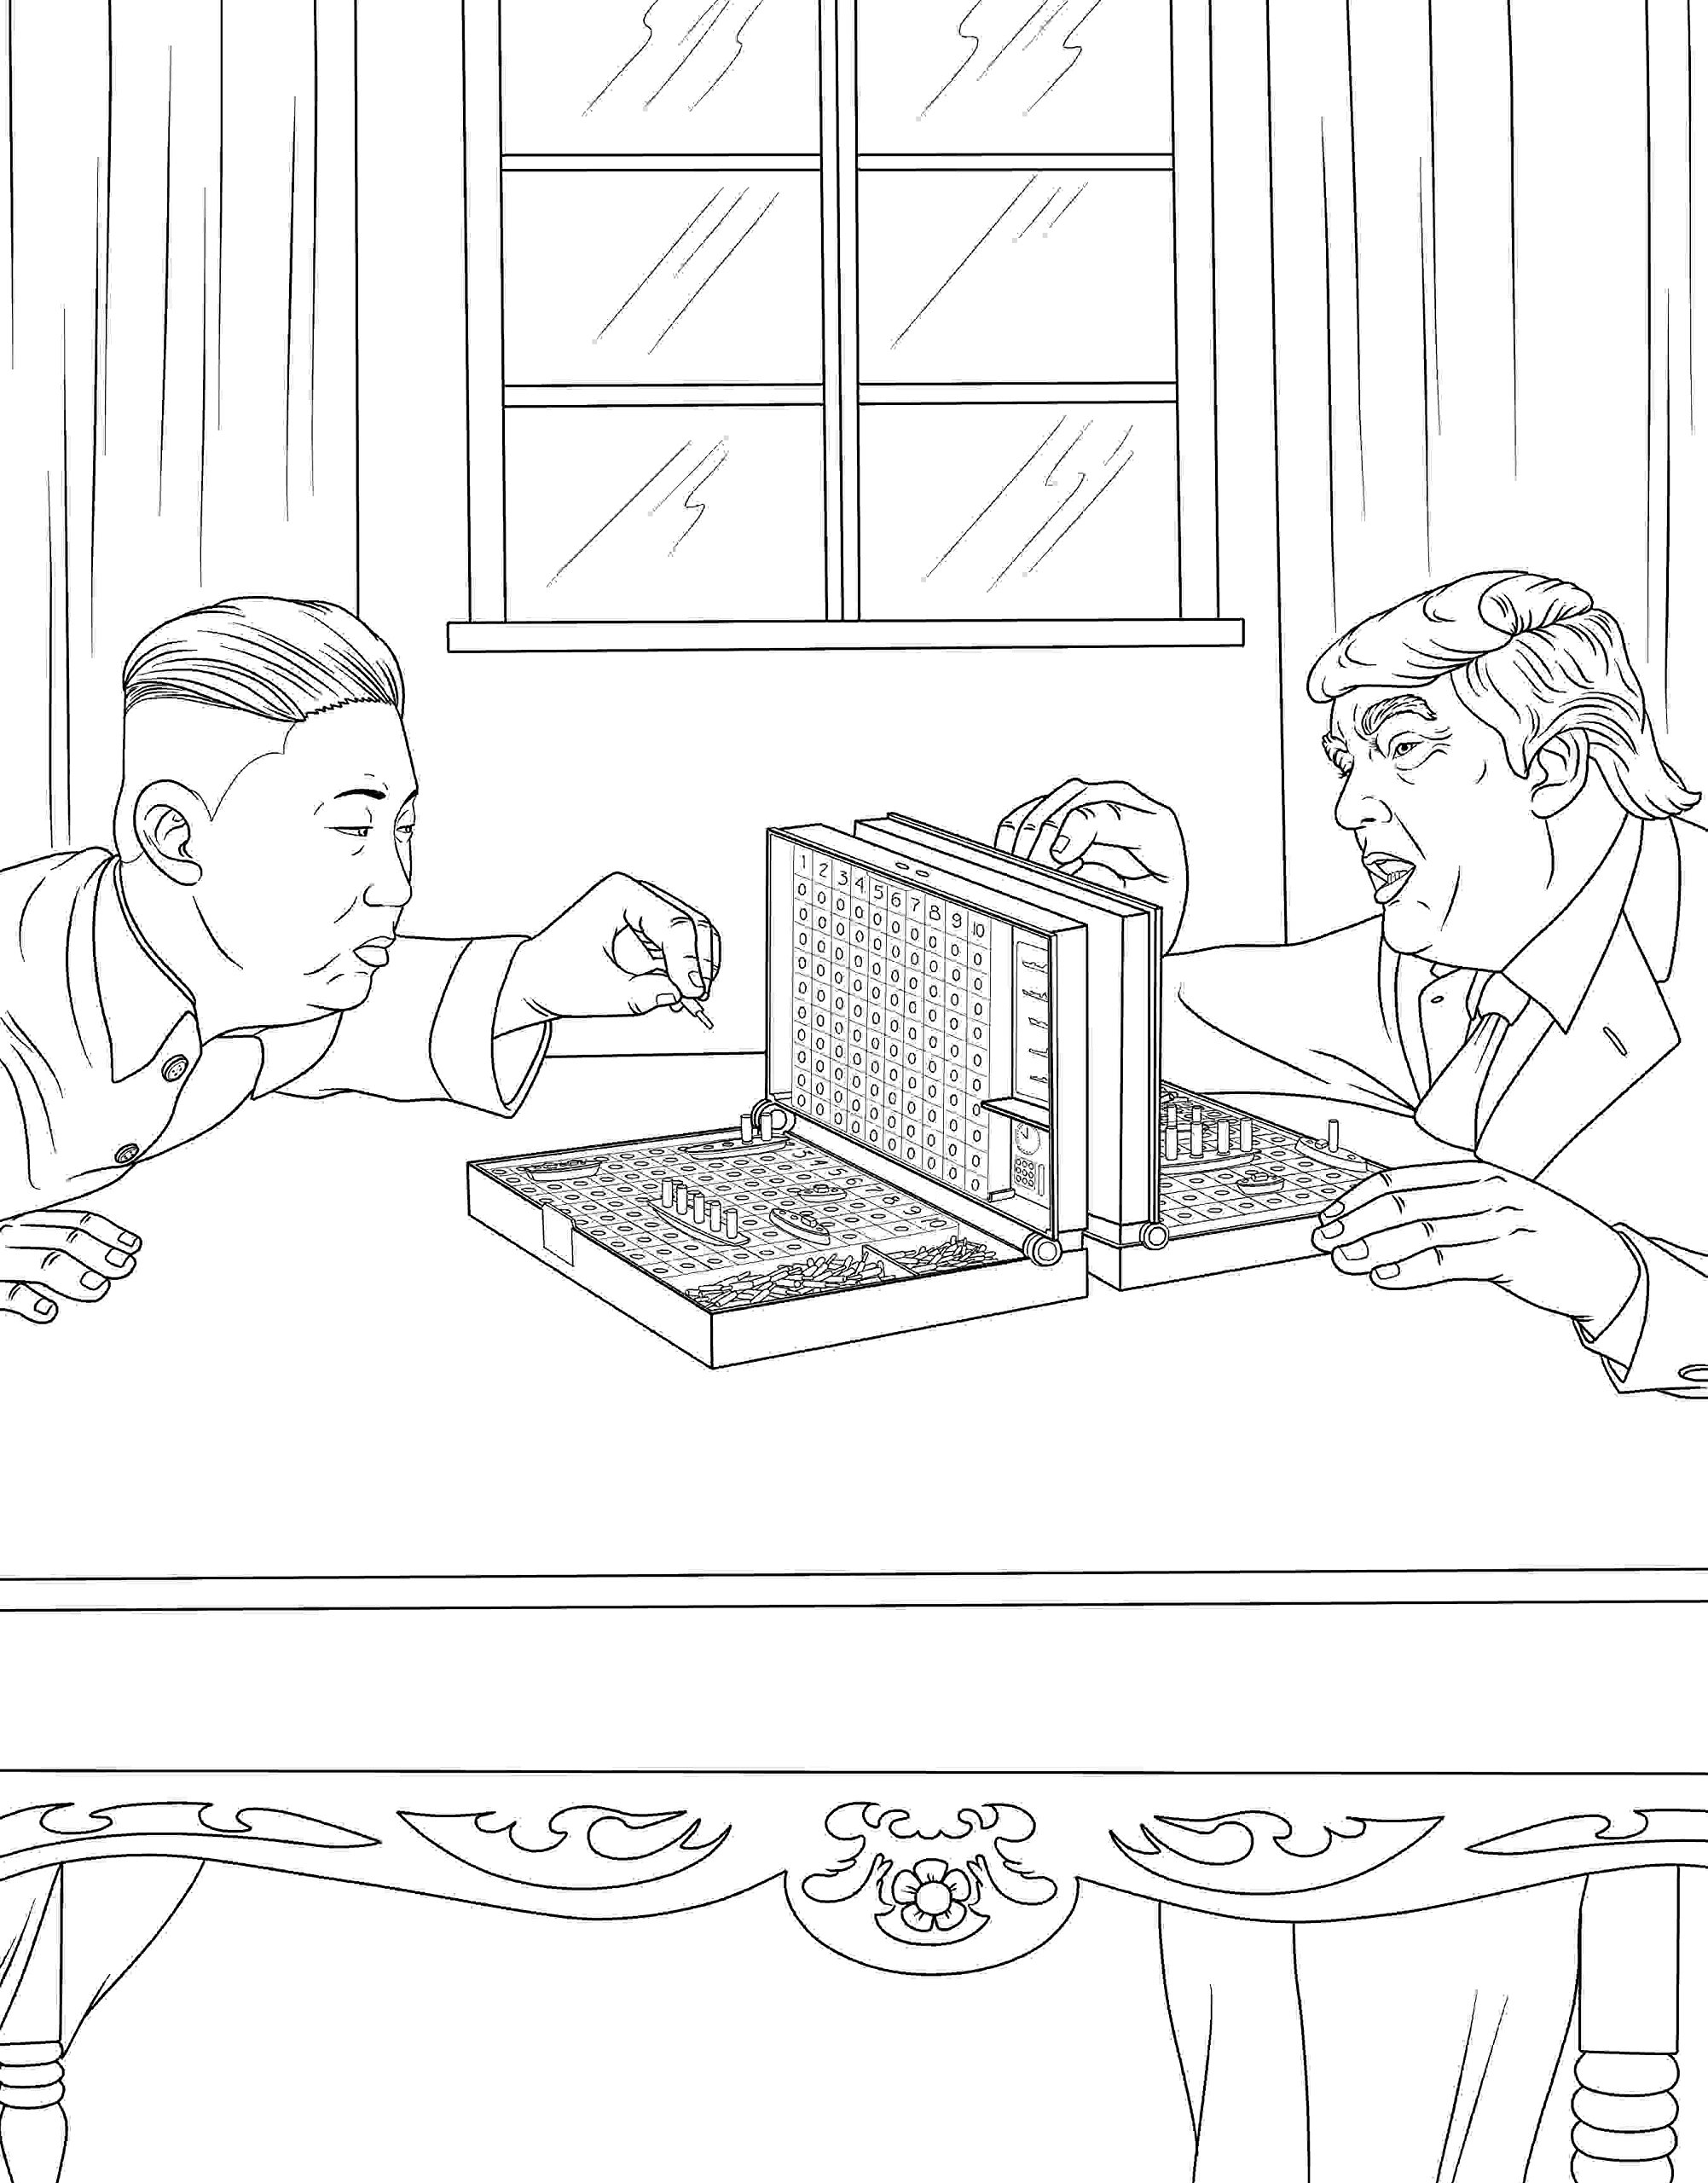 The Trump Coloring Book: Amazon.ca: M. G. Anthony: Books